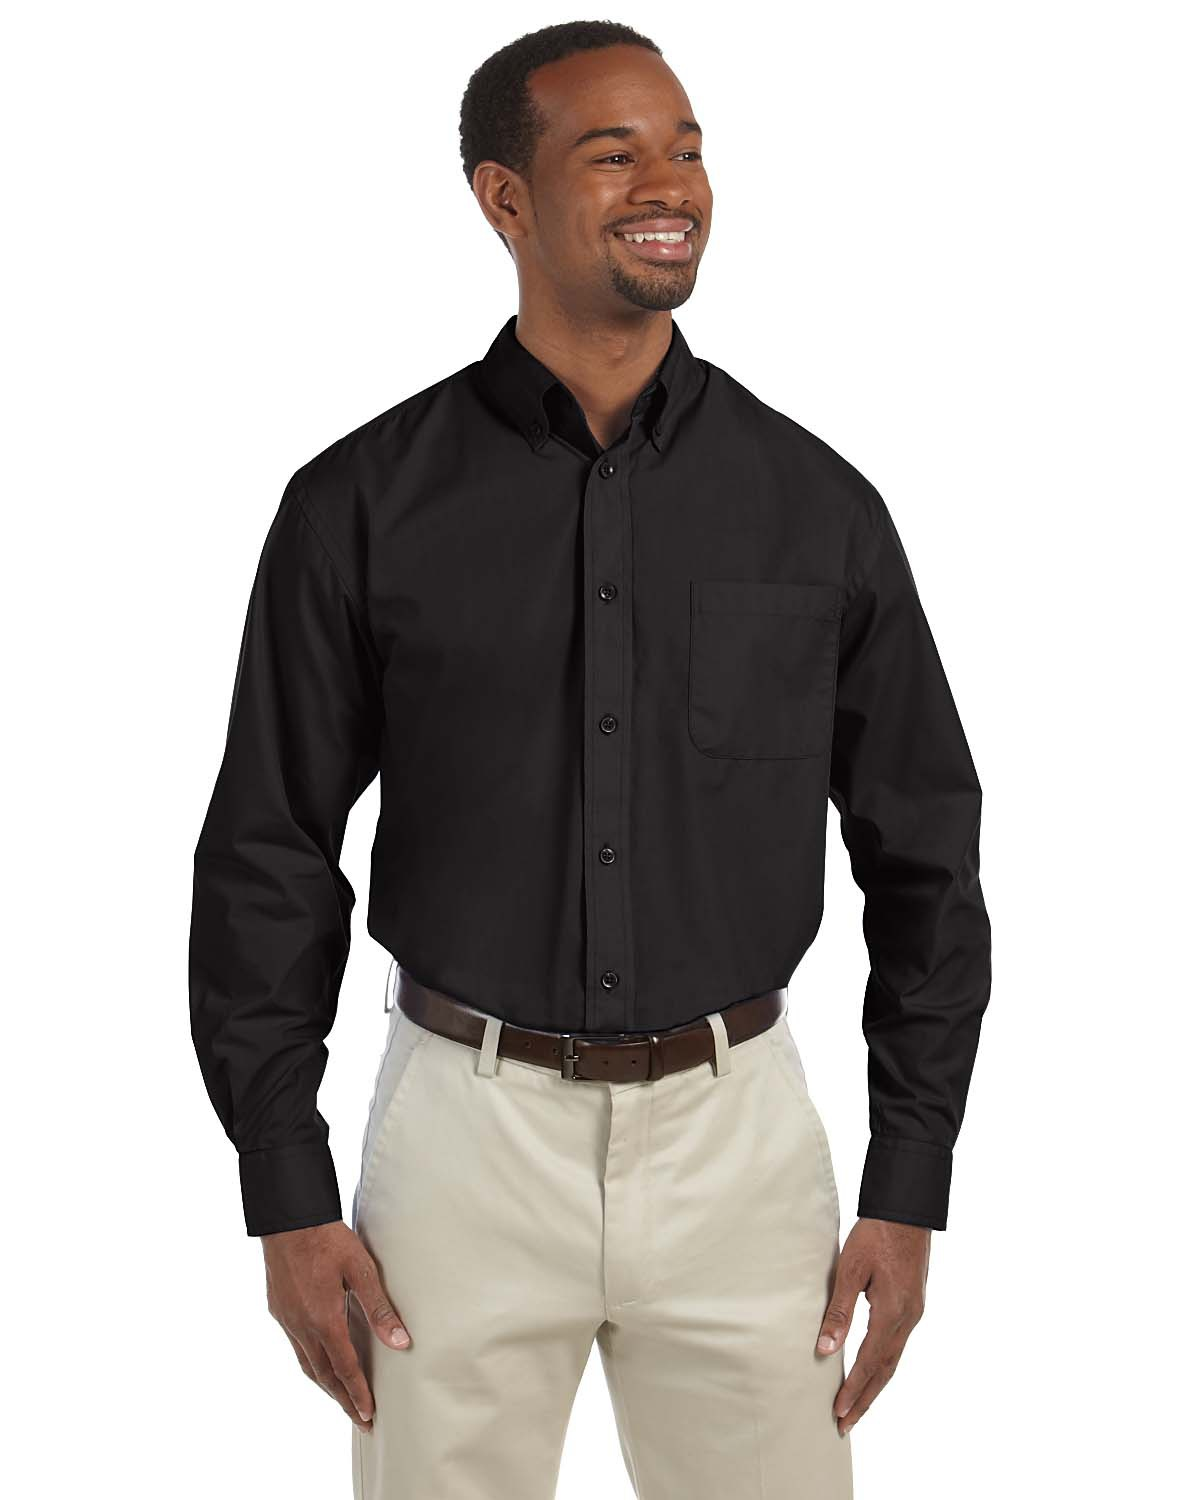 Men 39 S Big And Tall Shirts At Wholesale Price Great